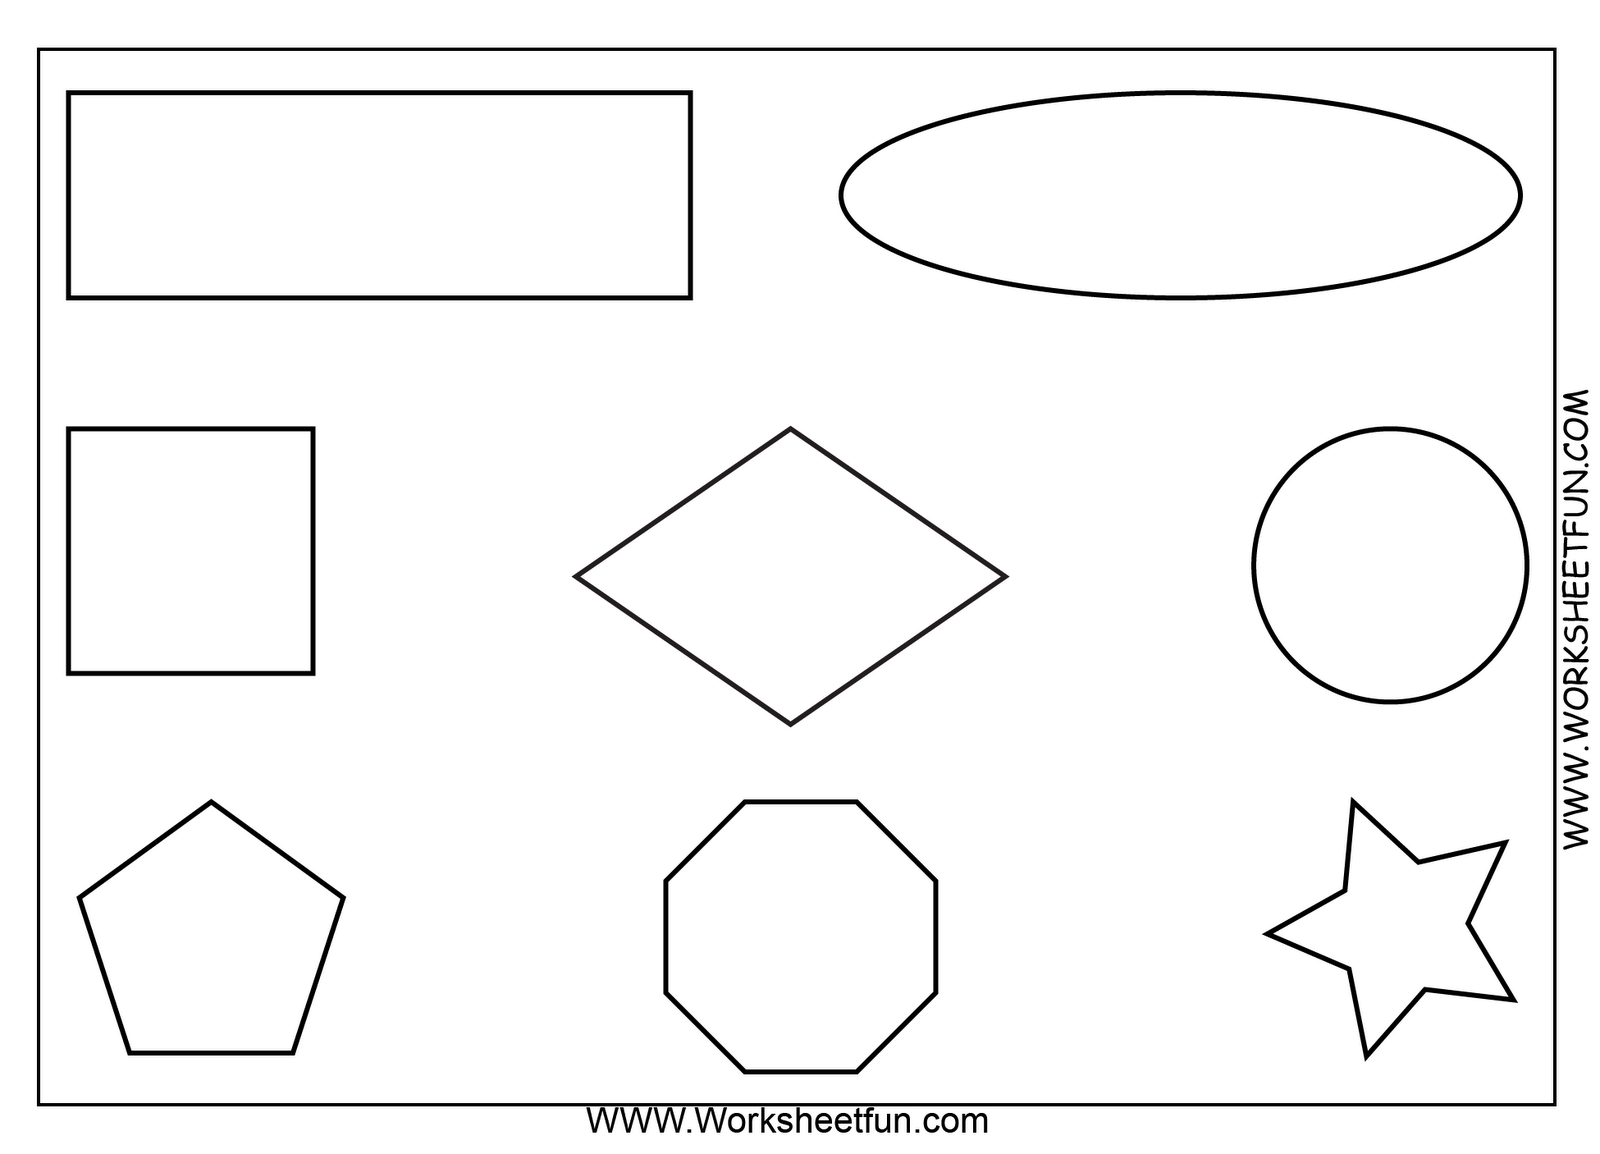 Shapes coloring pages for preschoolers only coloring pages for Coloring page for preschool